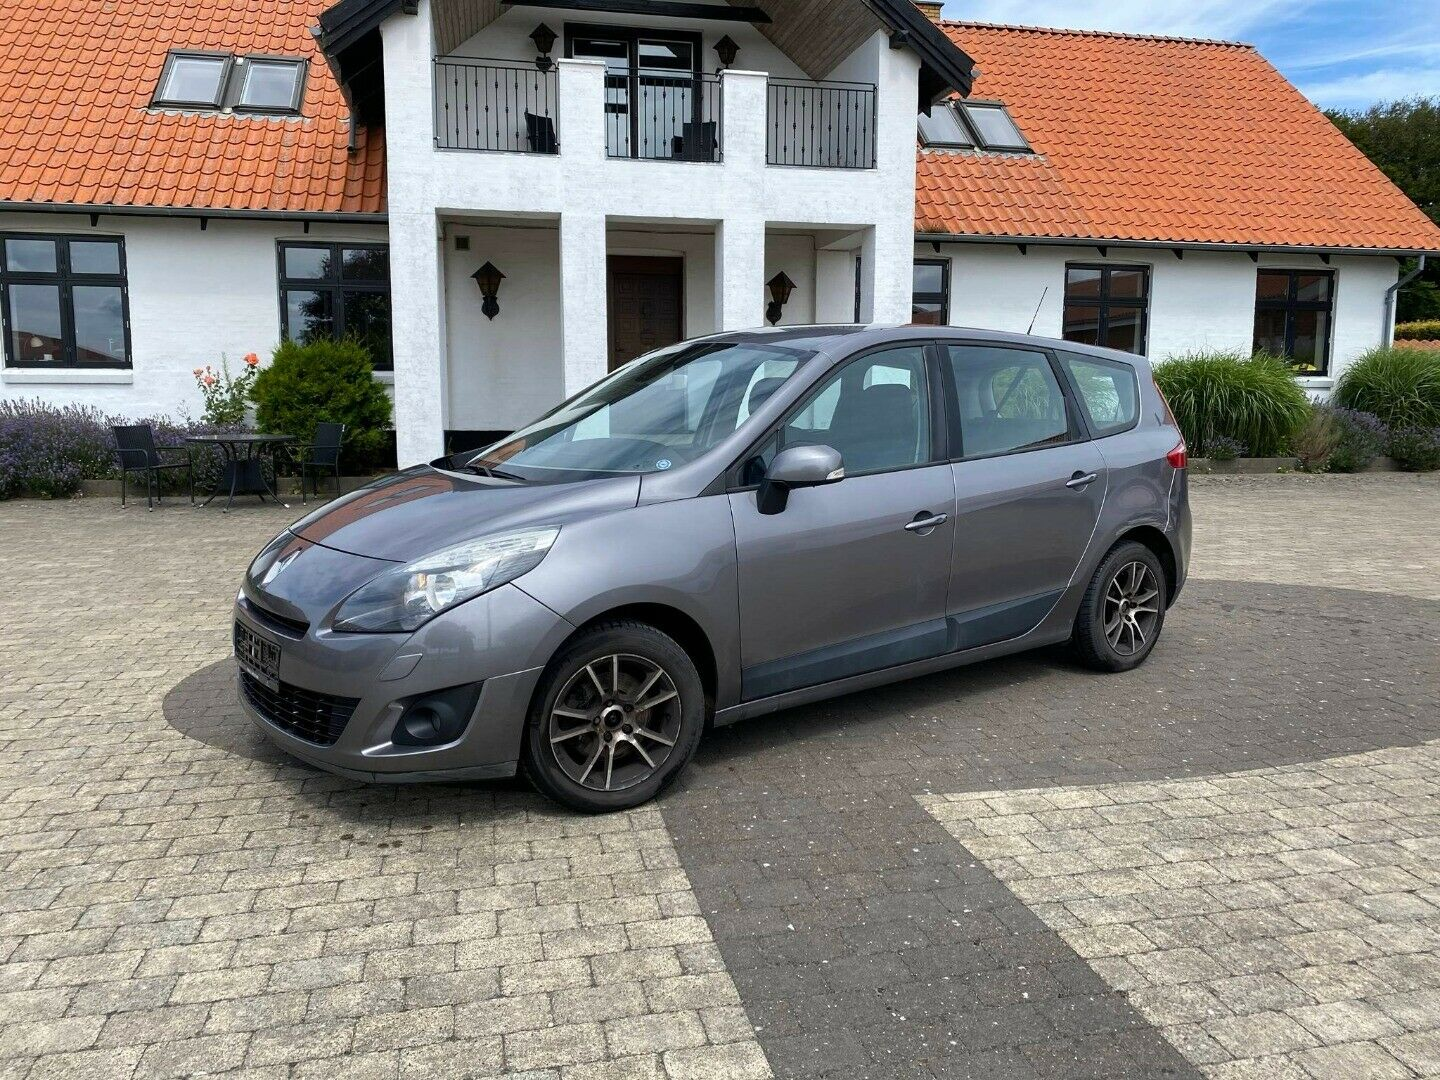 Renault Grand Scenic III 1,9 dCi 130 Expression 7prs 5d - 39.900 kr.